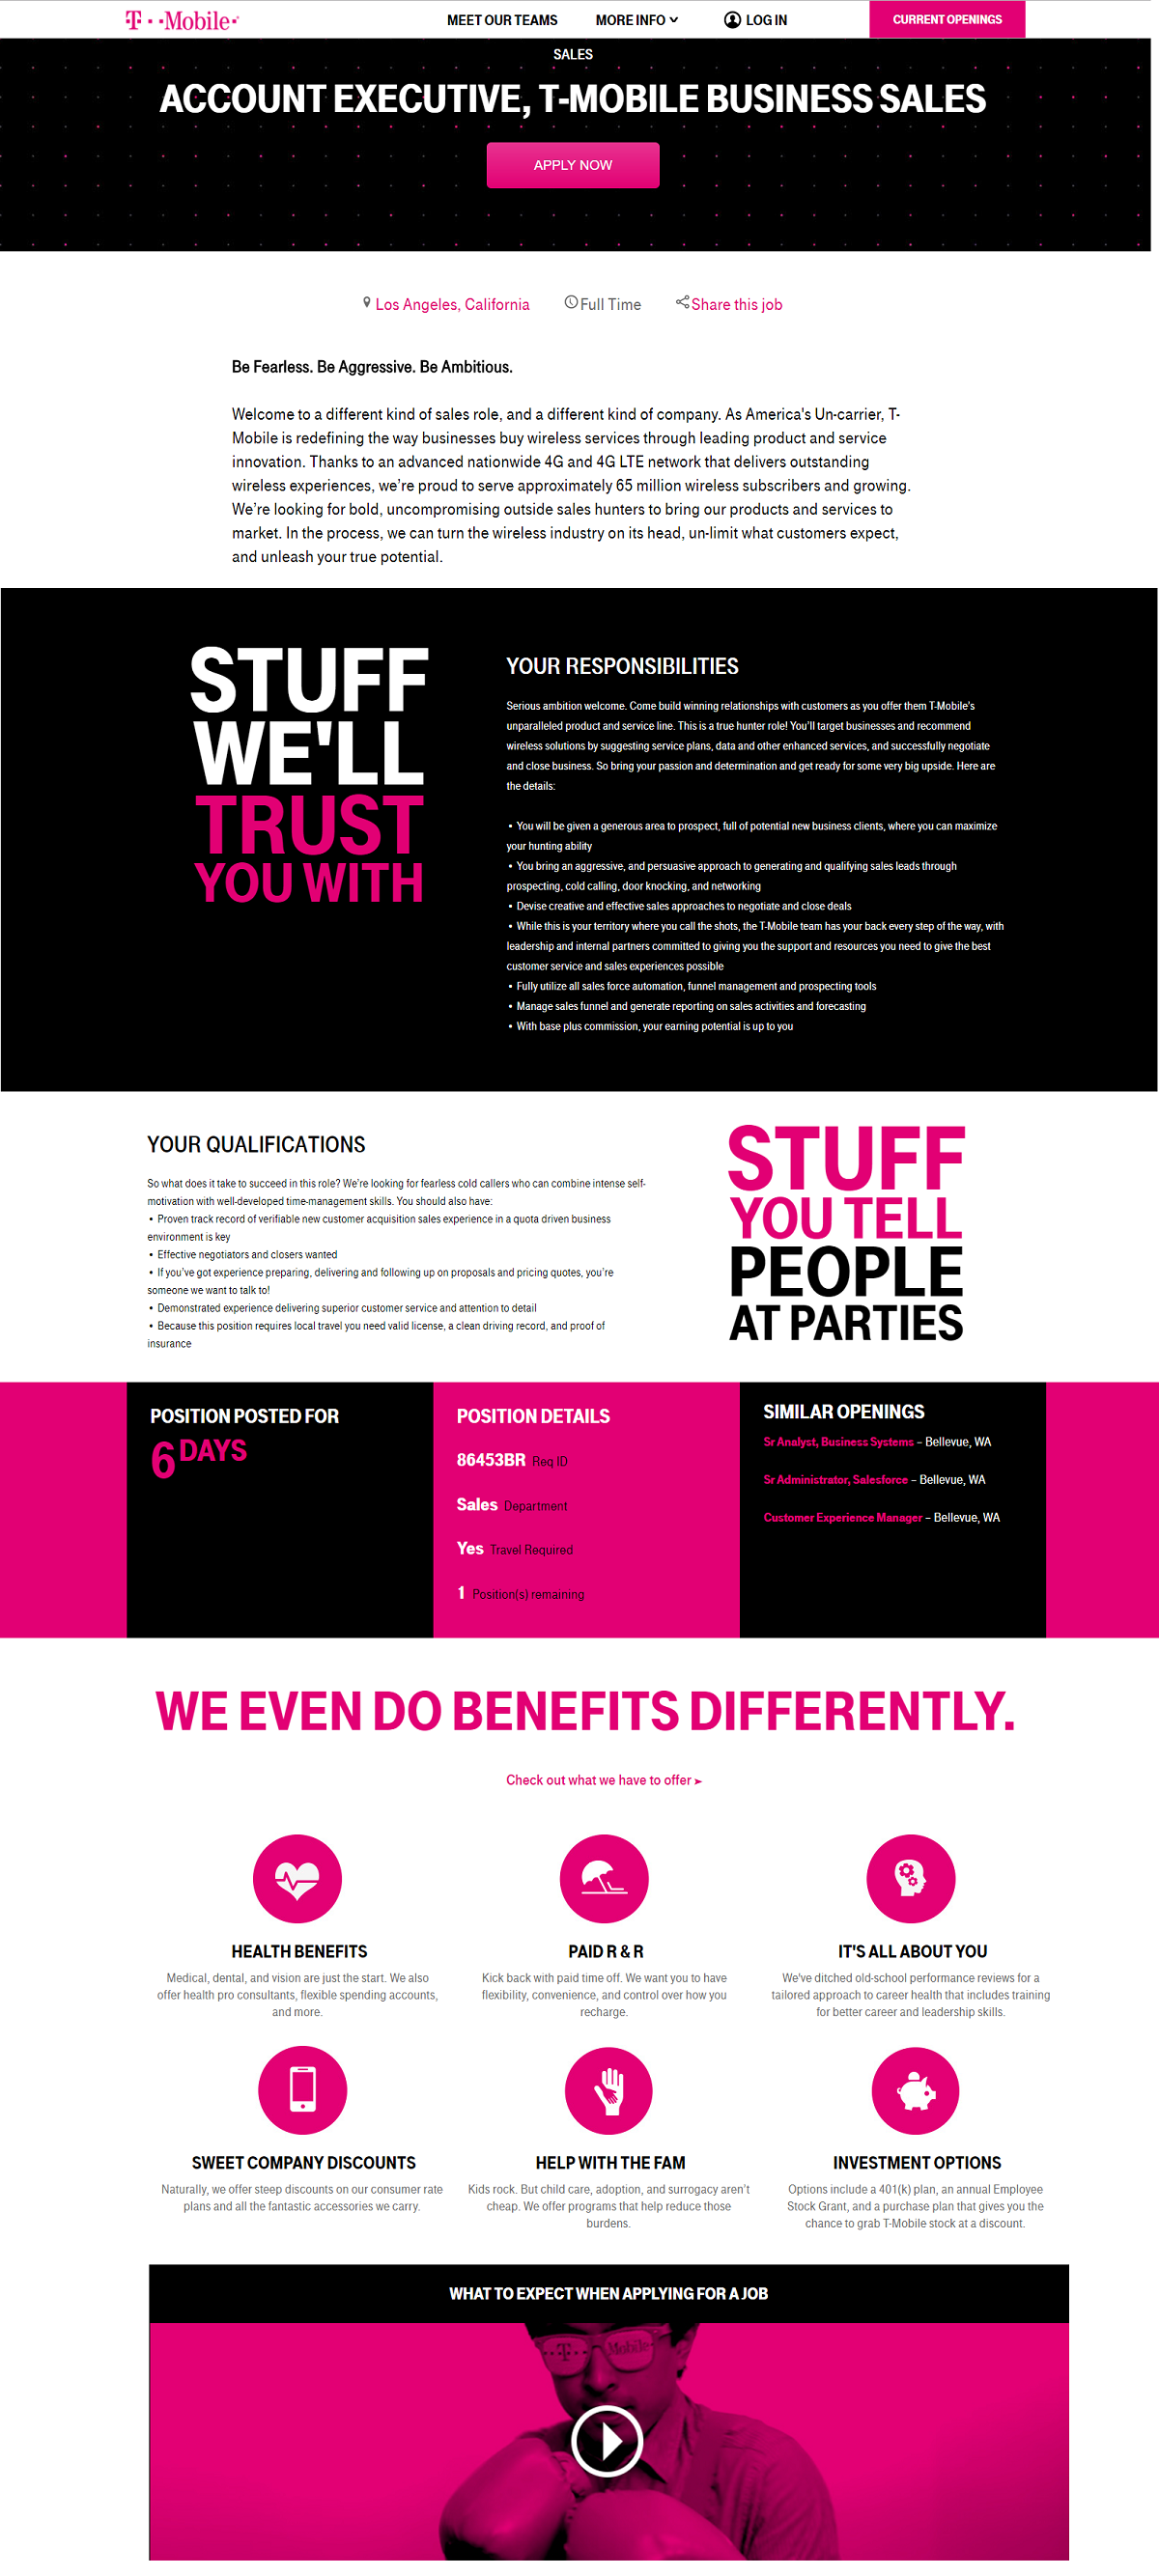 Account Executive Job Ad T-Mobile